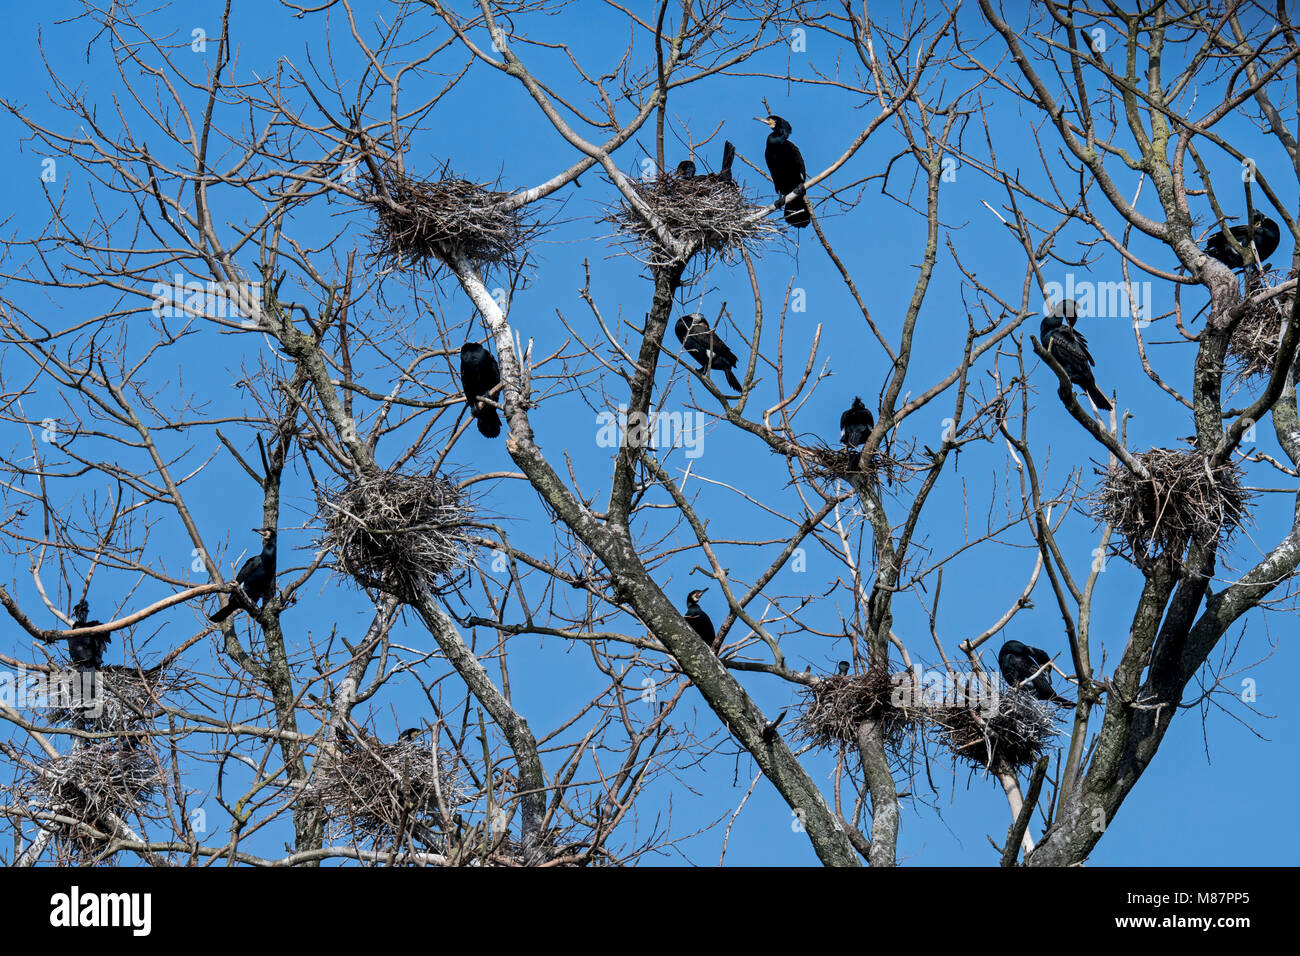 Colony of great cormorants (Phalacrocorax carbo) nesting in dead tree in late winter / spring - Stock Image